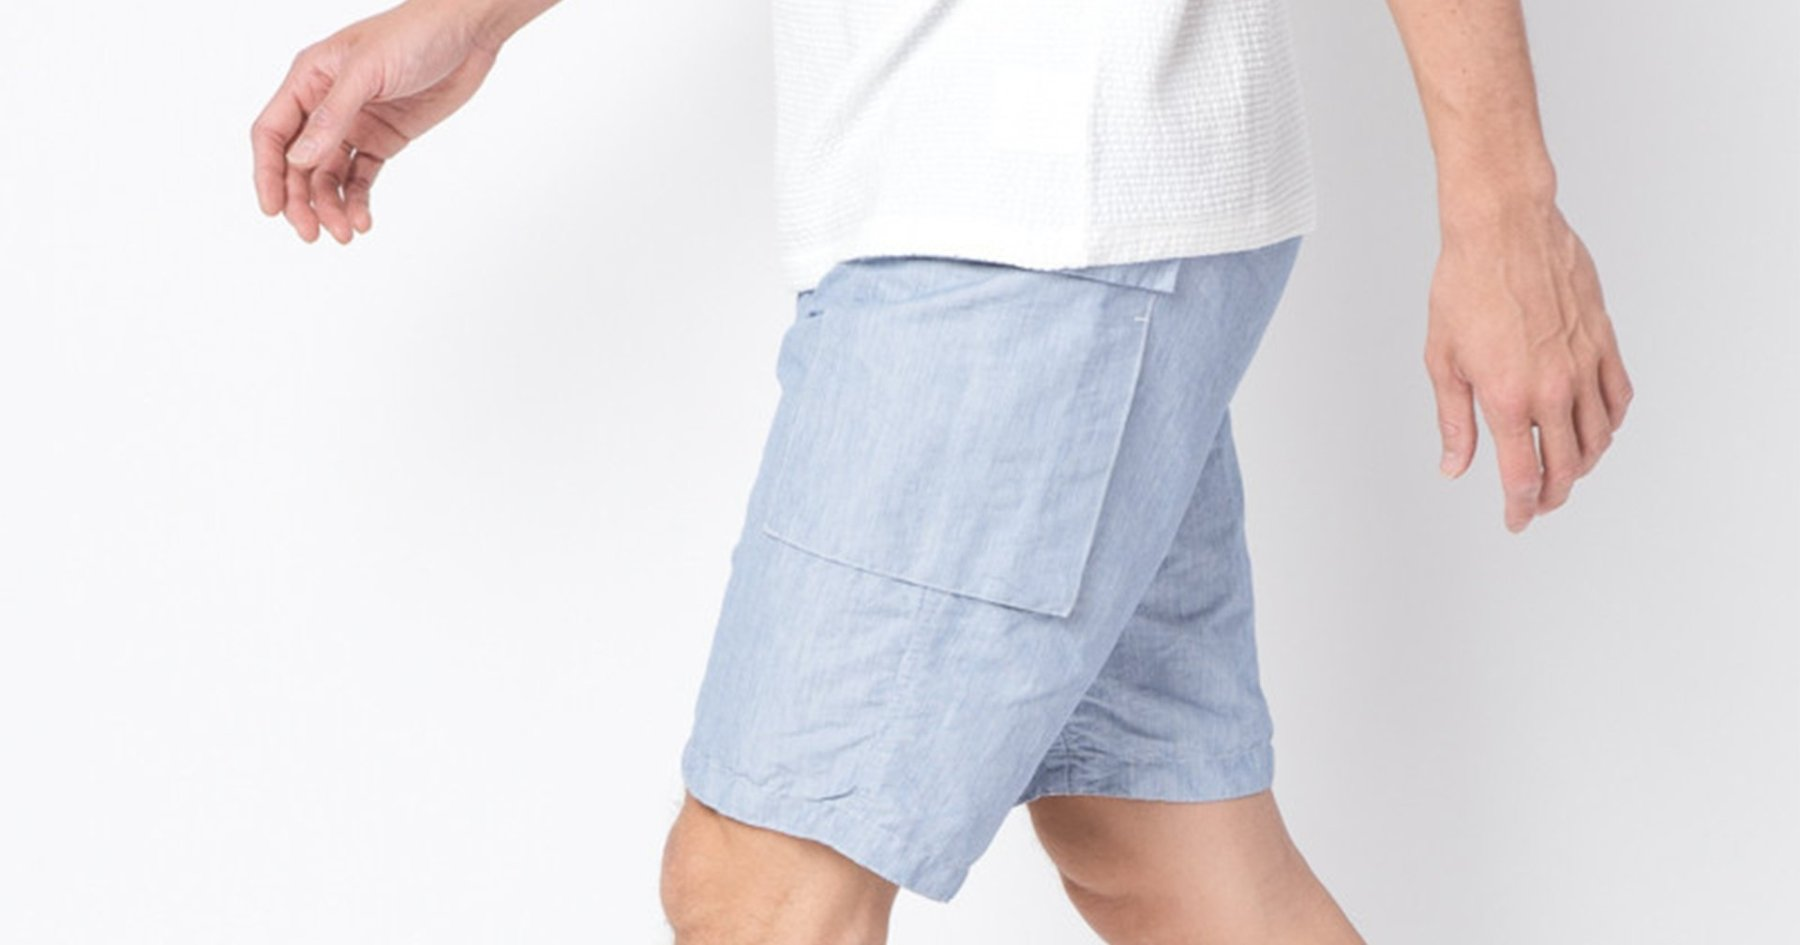 The Big Shorts: A Pair of Summer Britches for Every Gent